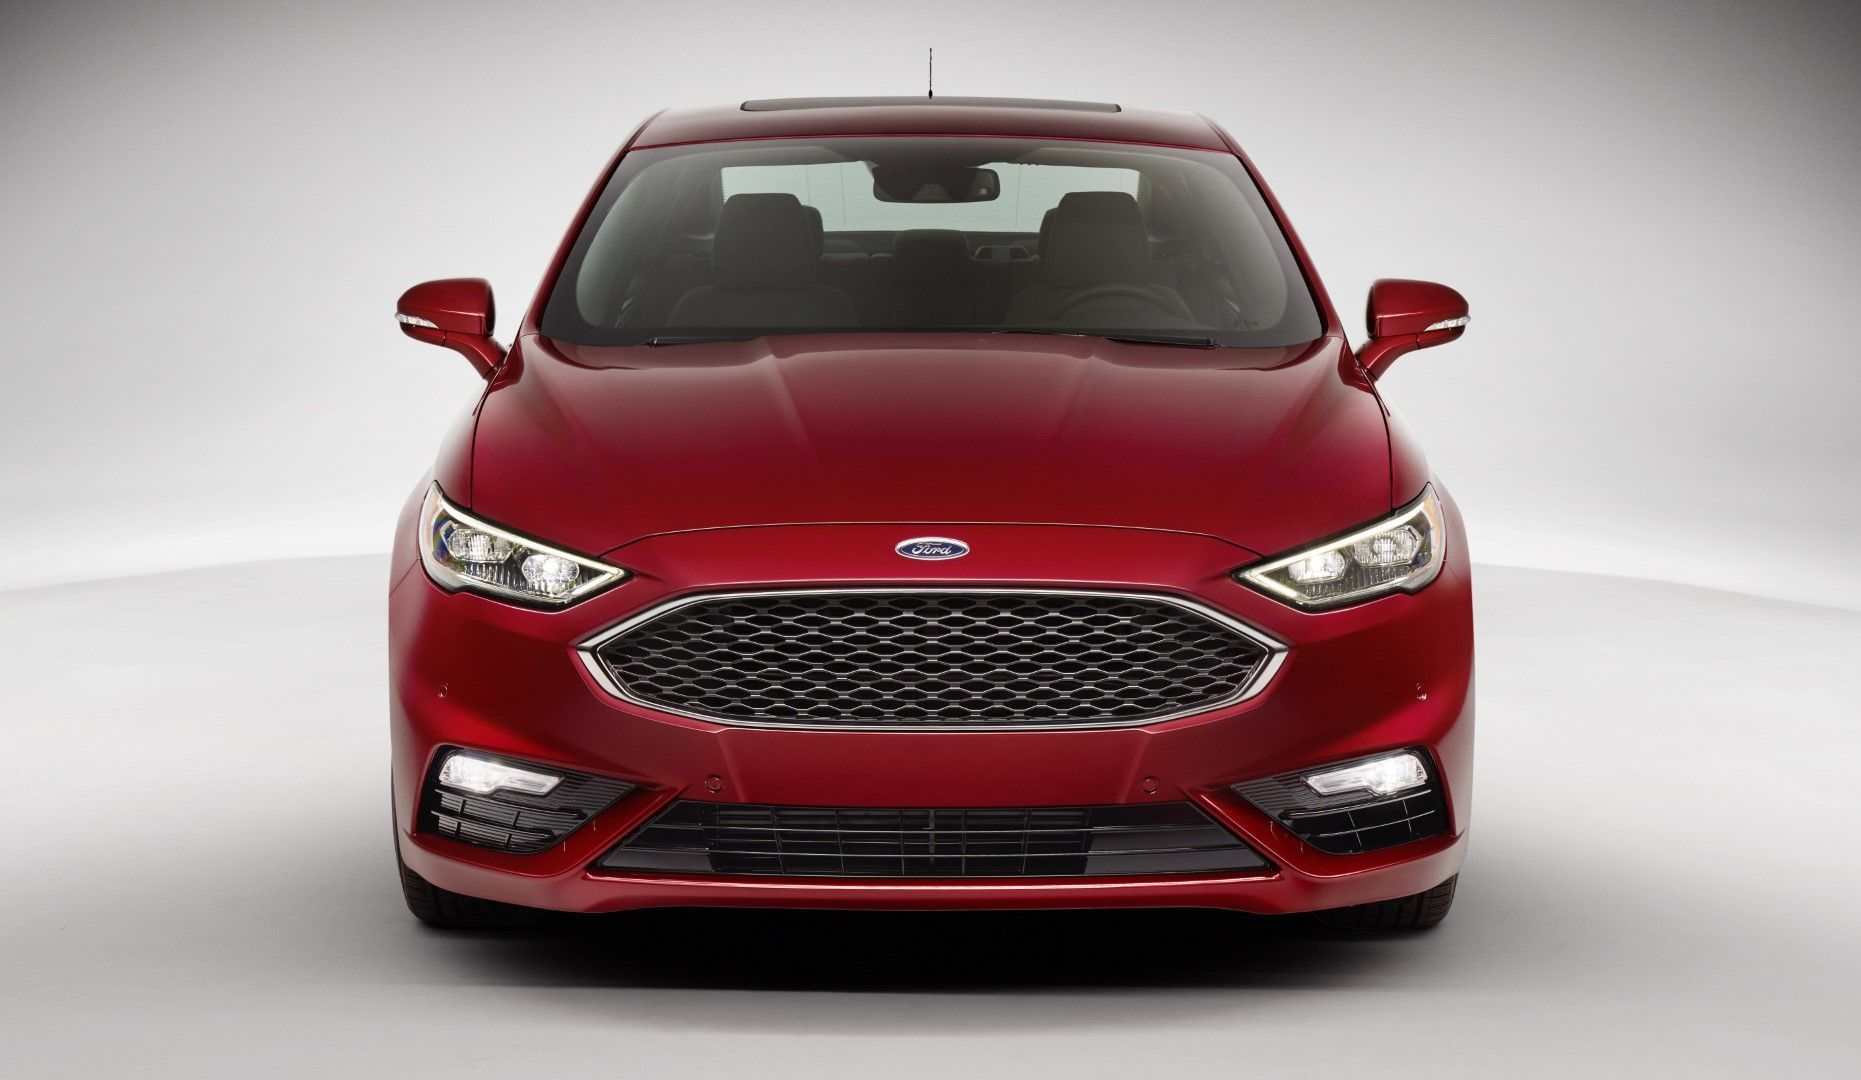 20172018 Ford Fusion Sport in 2020 Ford fusion, Ford